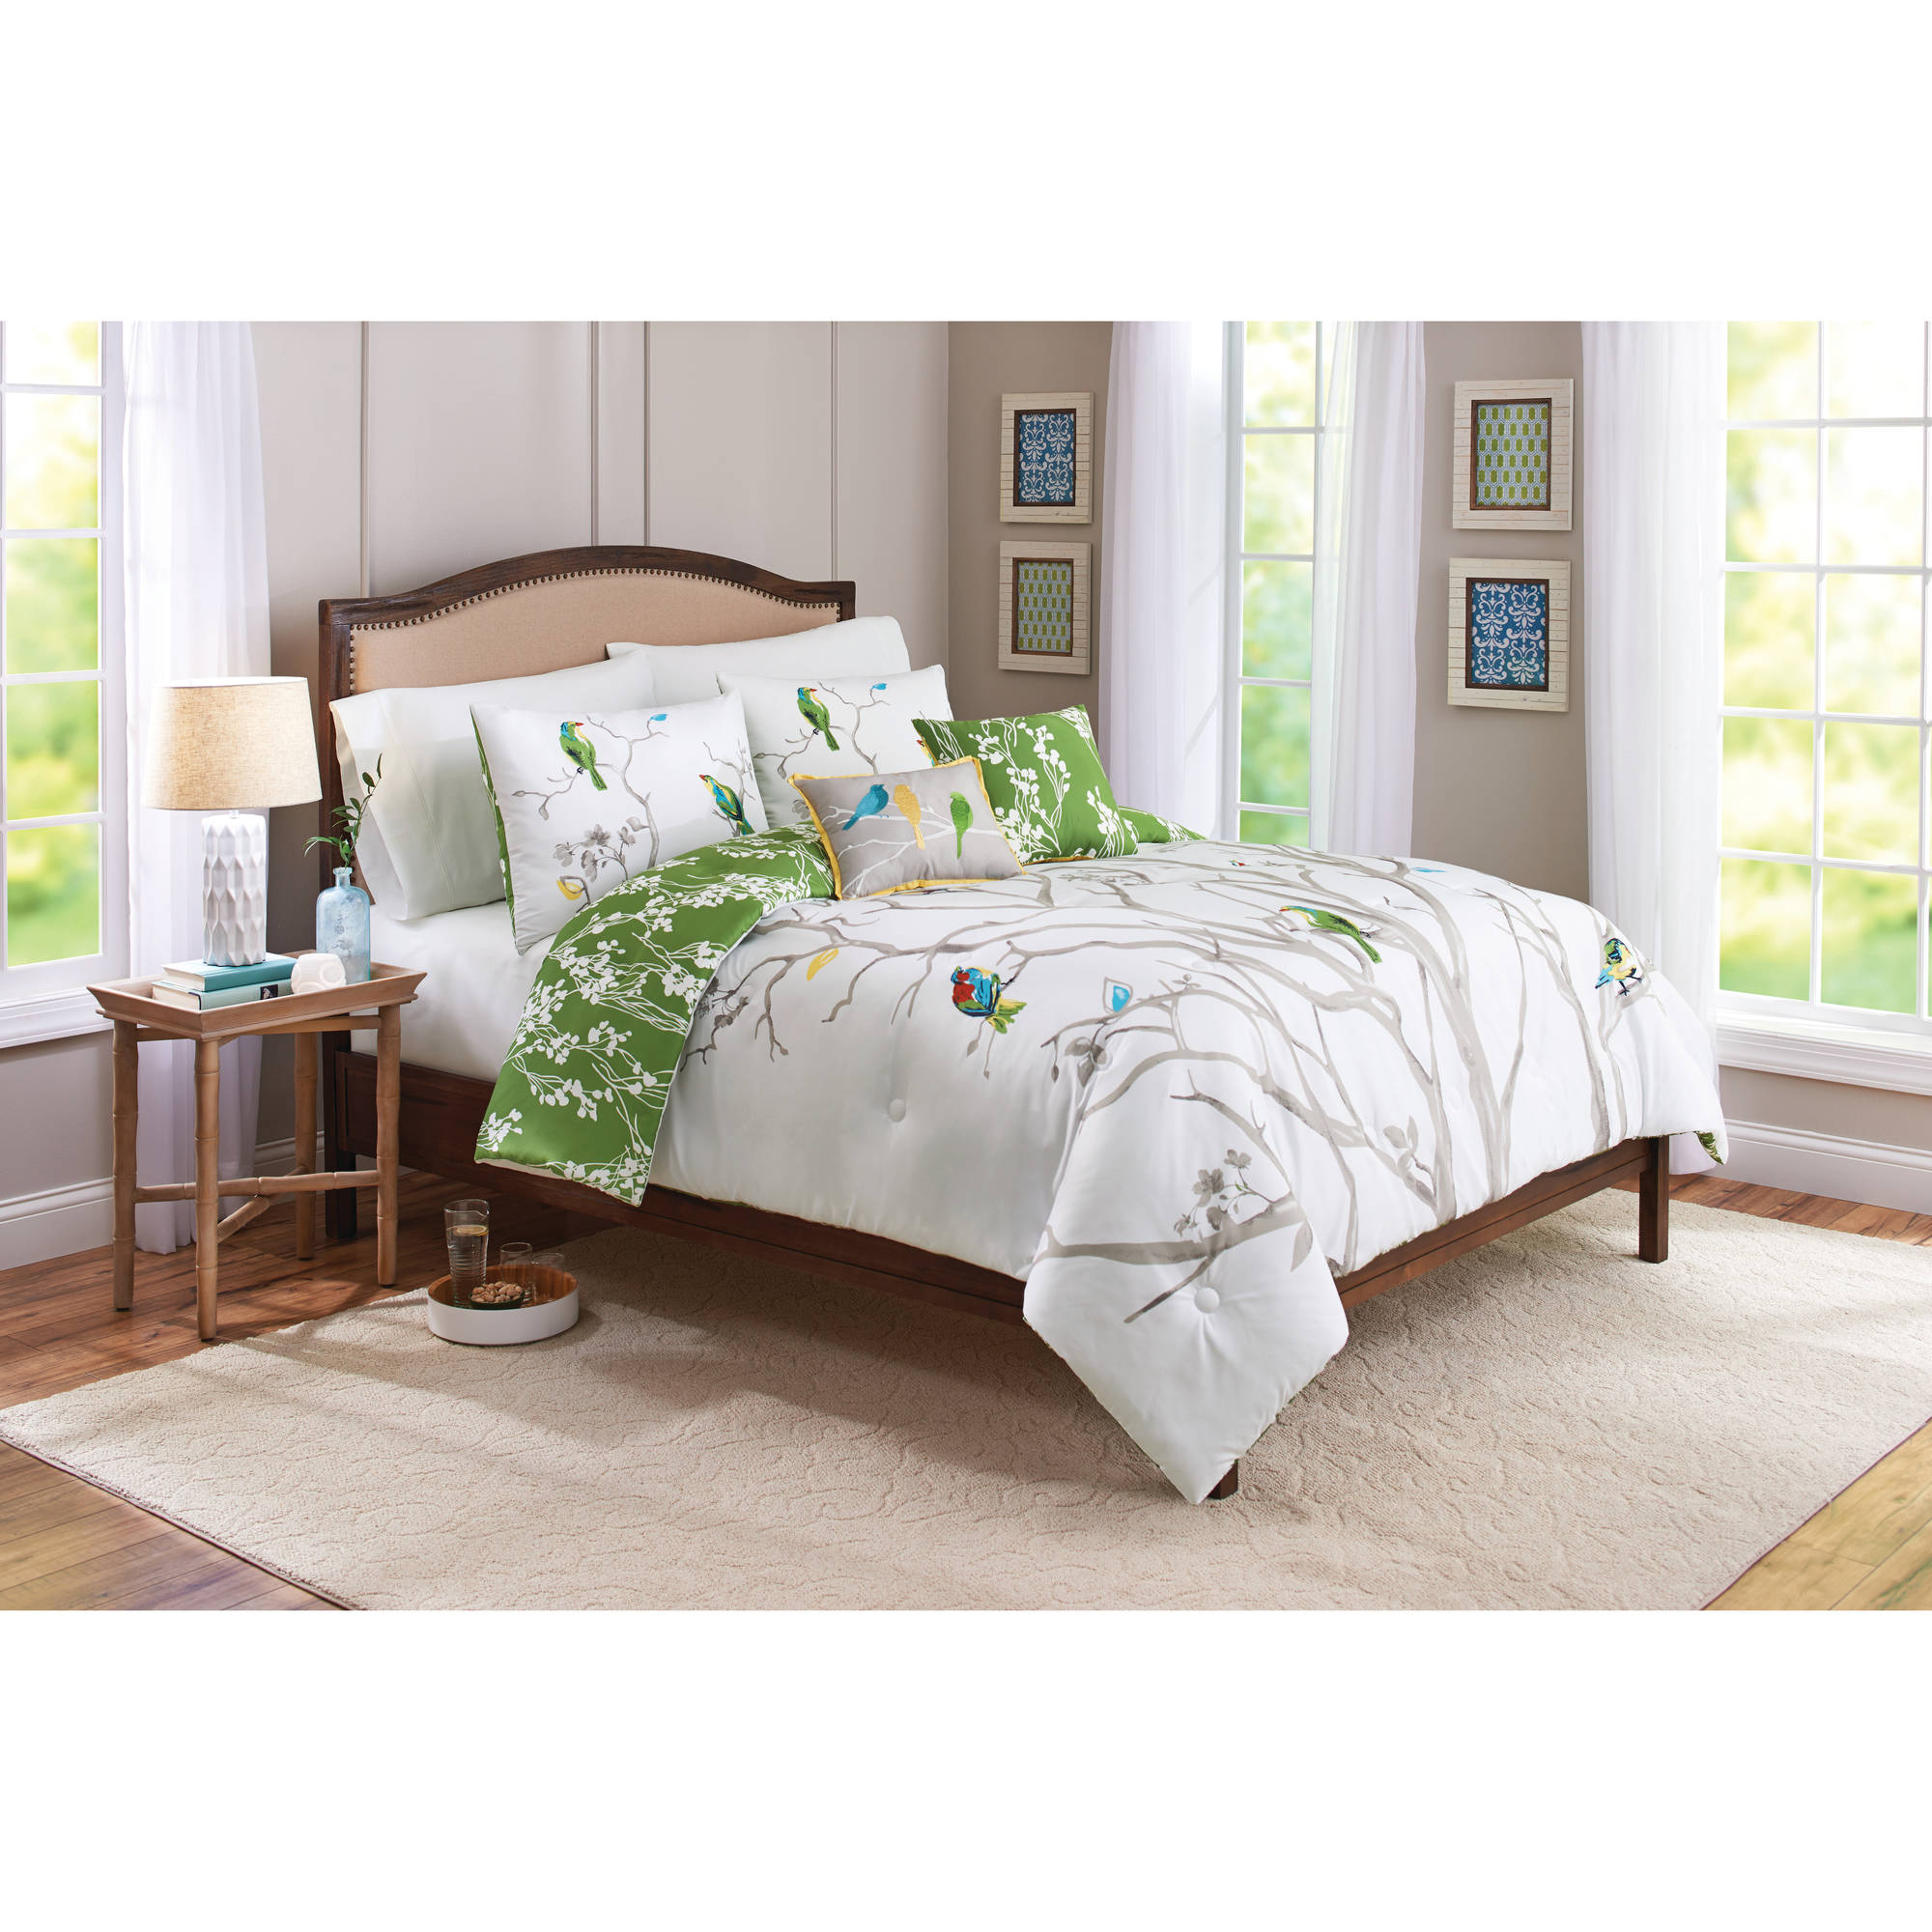 Better Homes and Gardens Tree Top 5 Piece Bedding Comforter Set